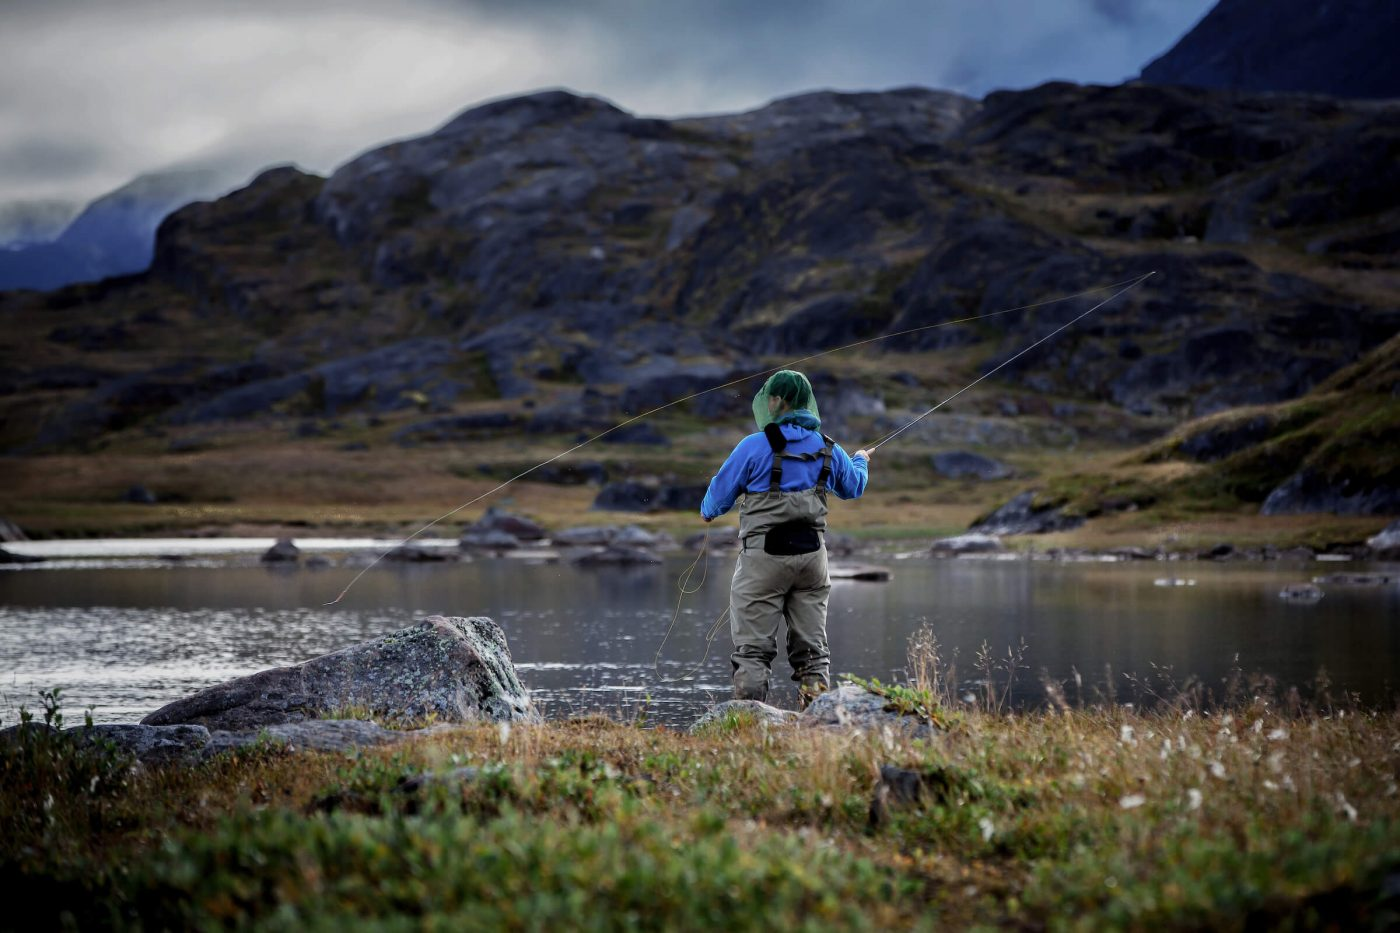 A fly fisherman enjoying the day on the river Erfalik in Greenland. Photo by Mads Pihl, Visit Greenland